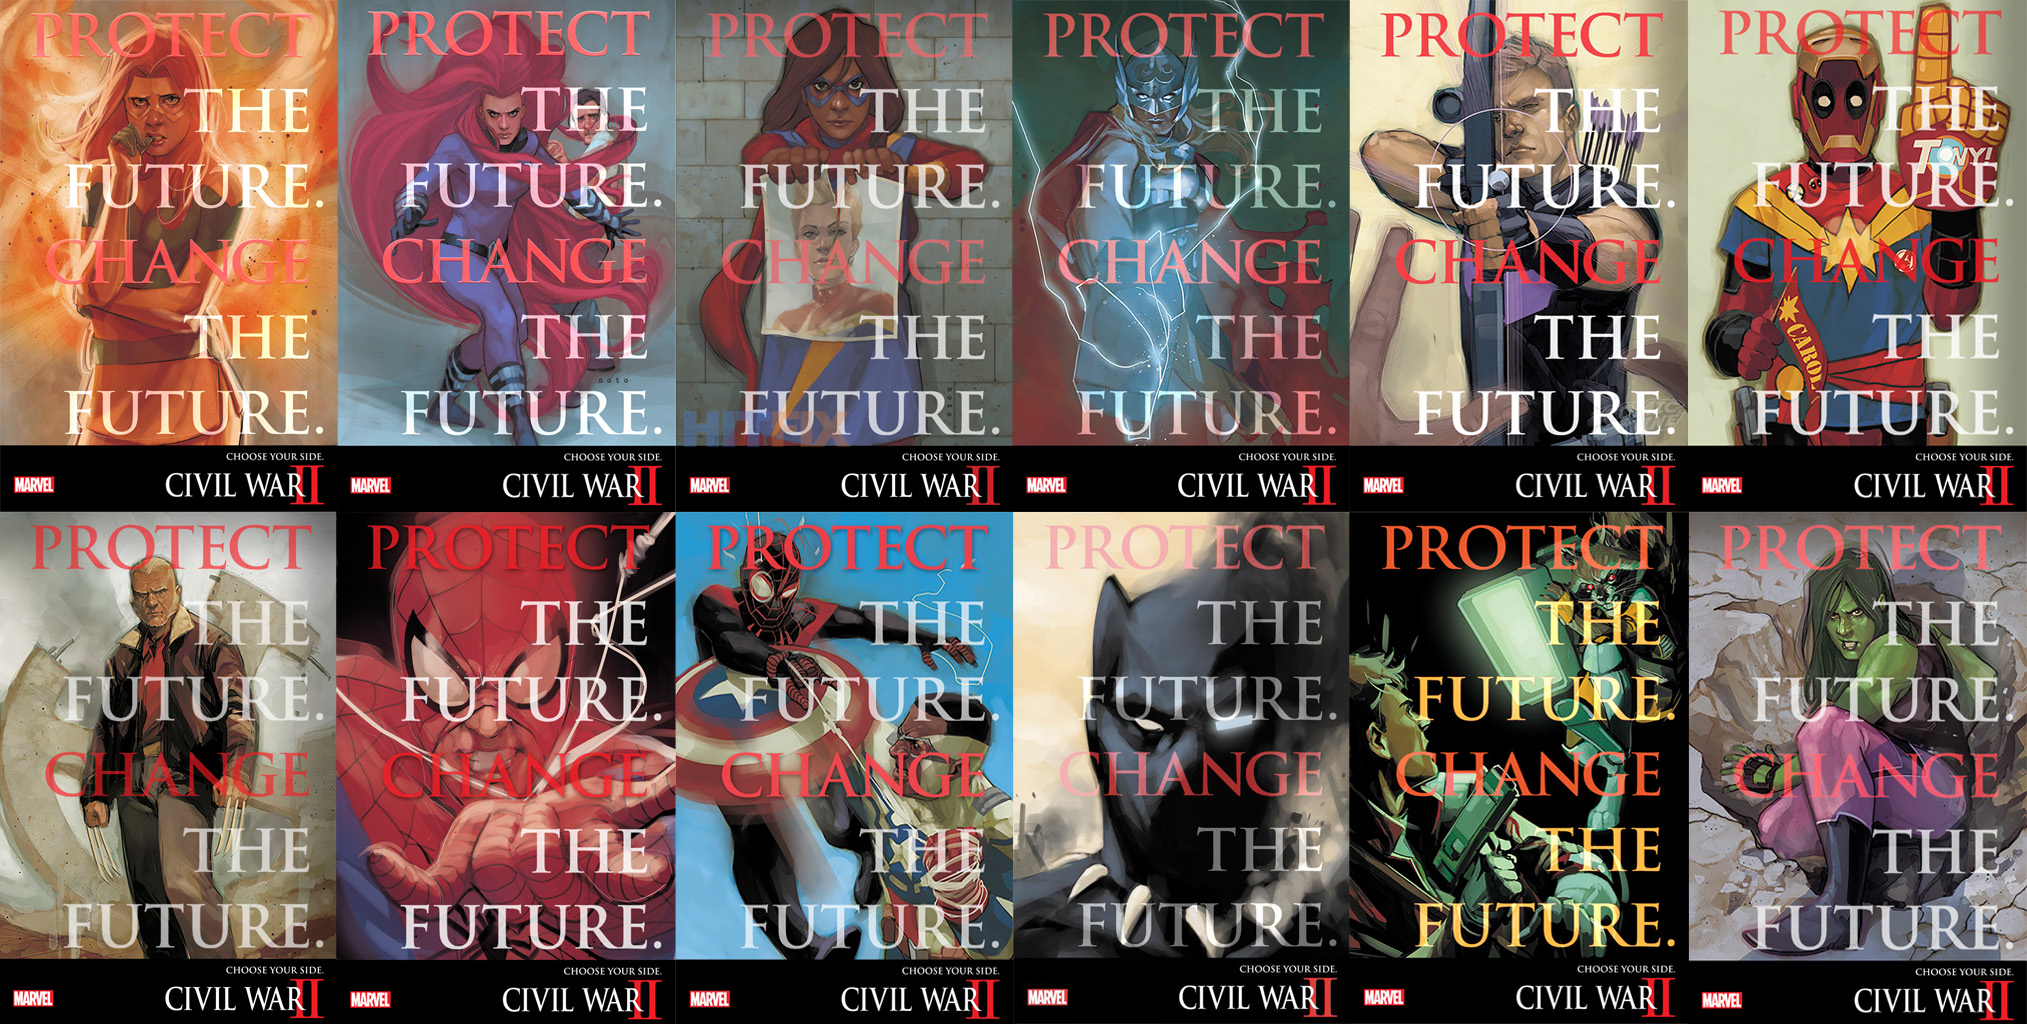 protect and change the future - Civil War 2Cover